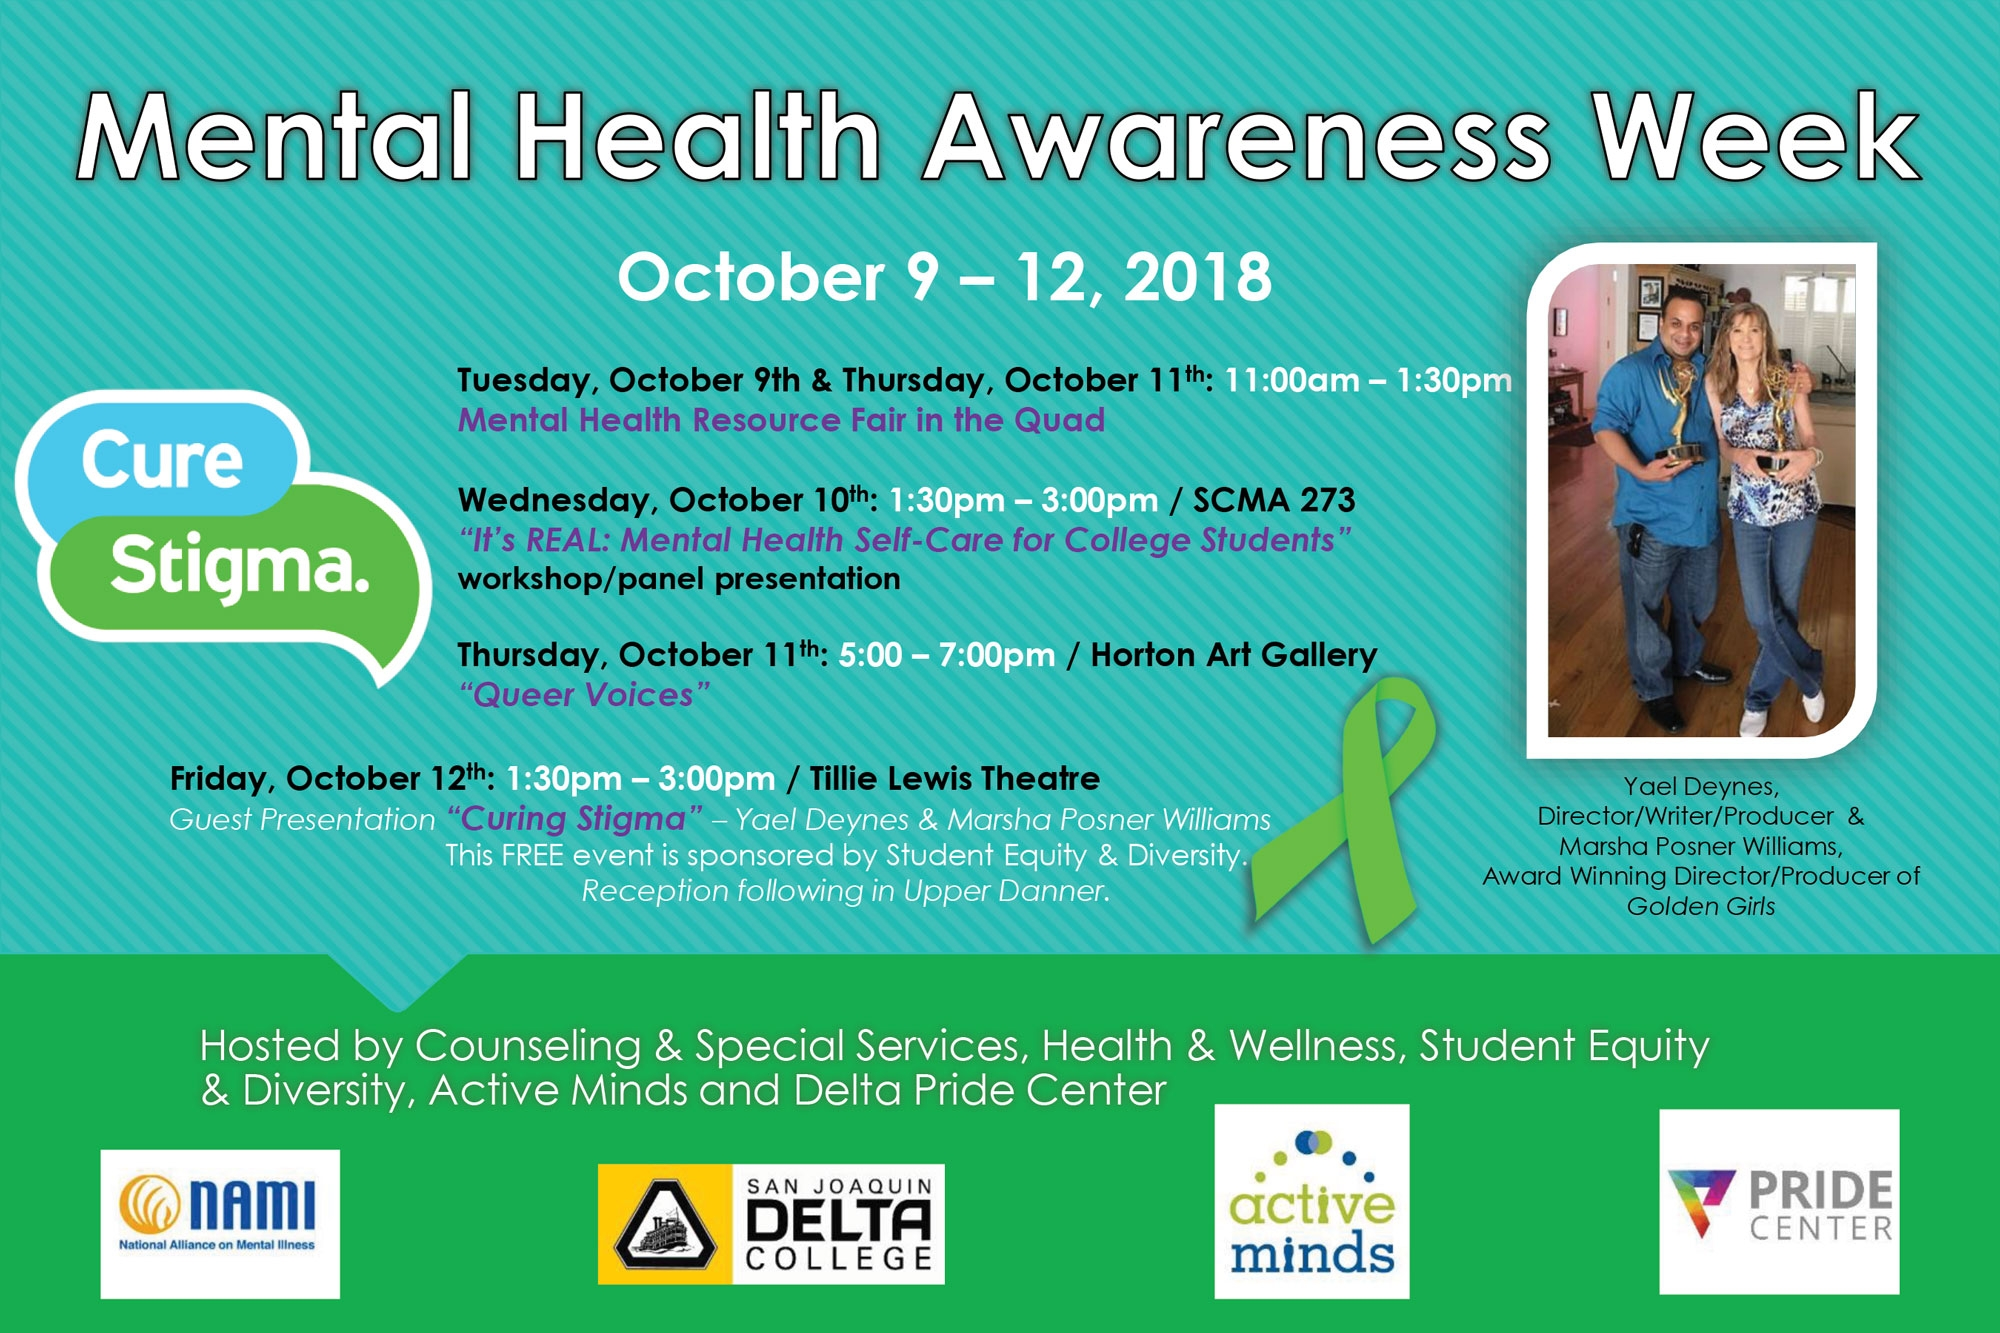 Mental Health Awareness Week Workshop Panel Presentation San